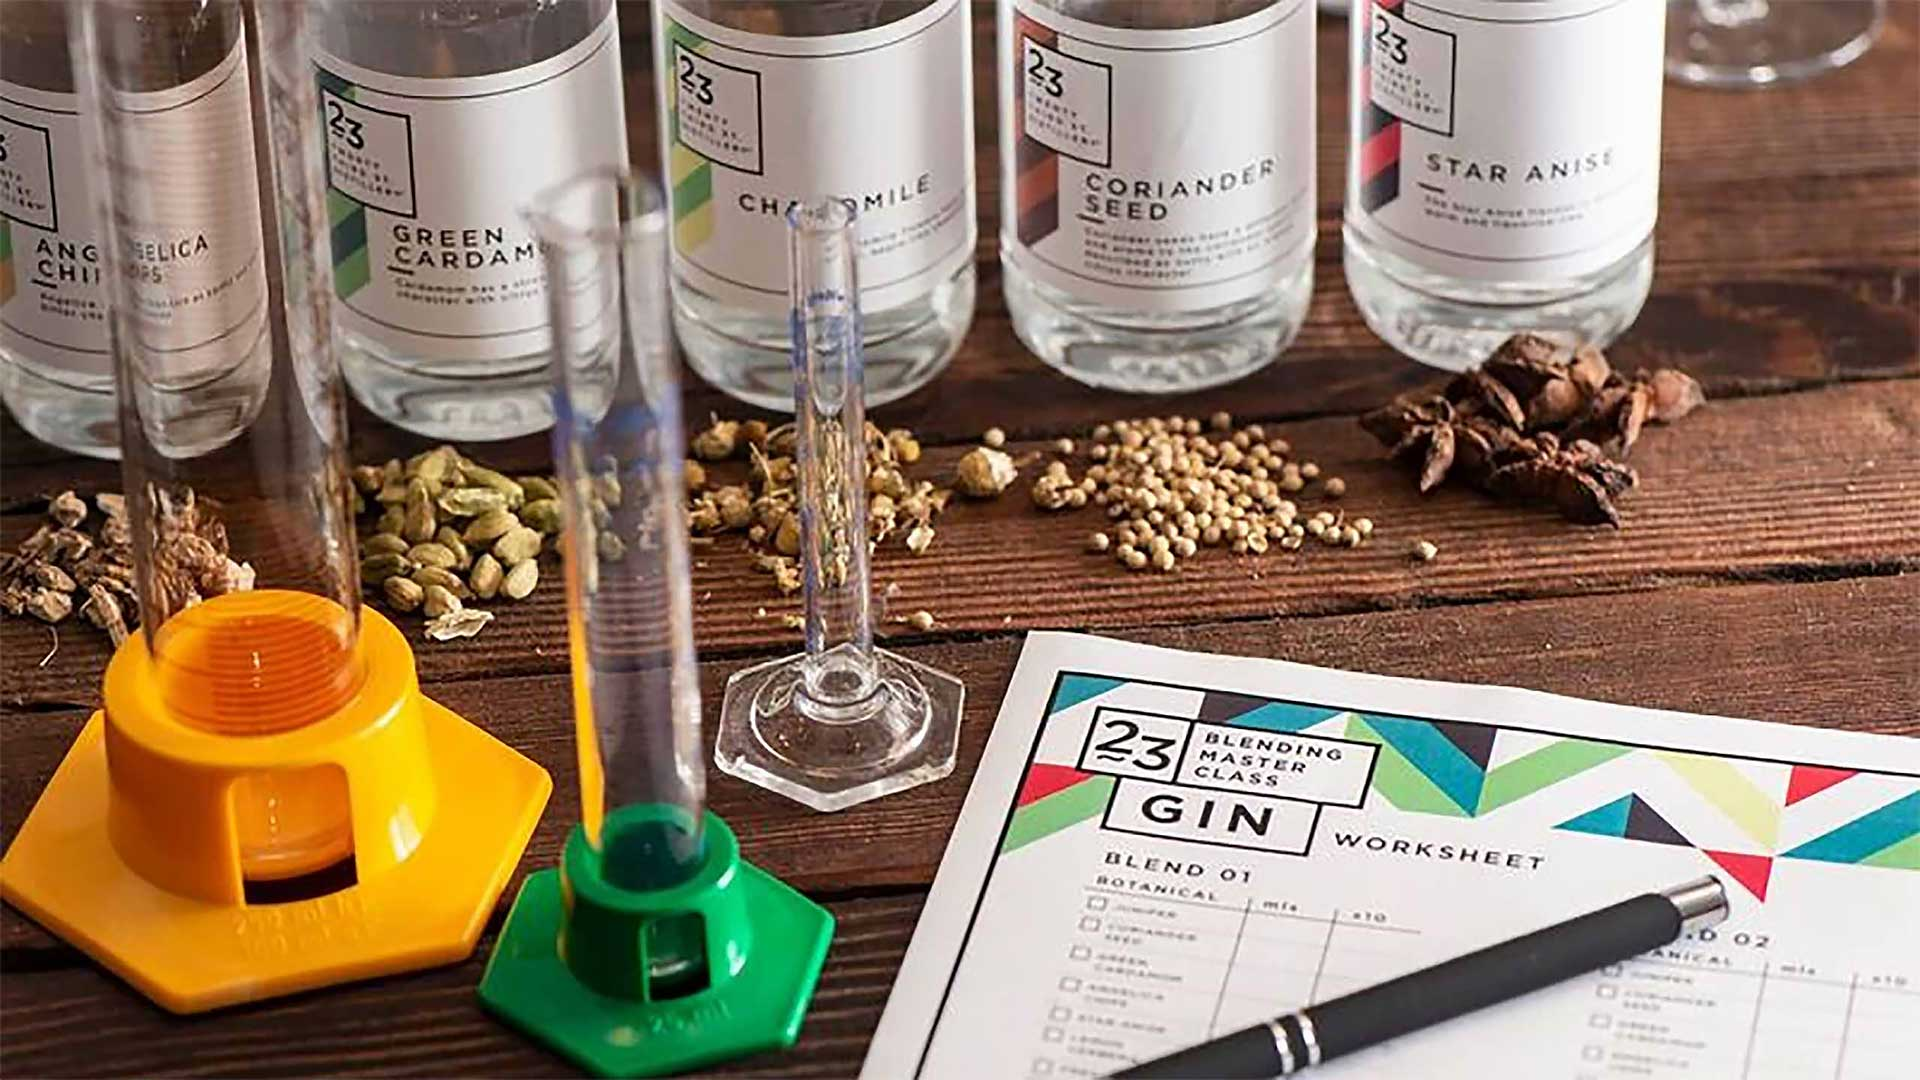 gin-masterclass-image-2-banner-2018